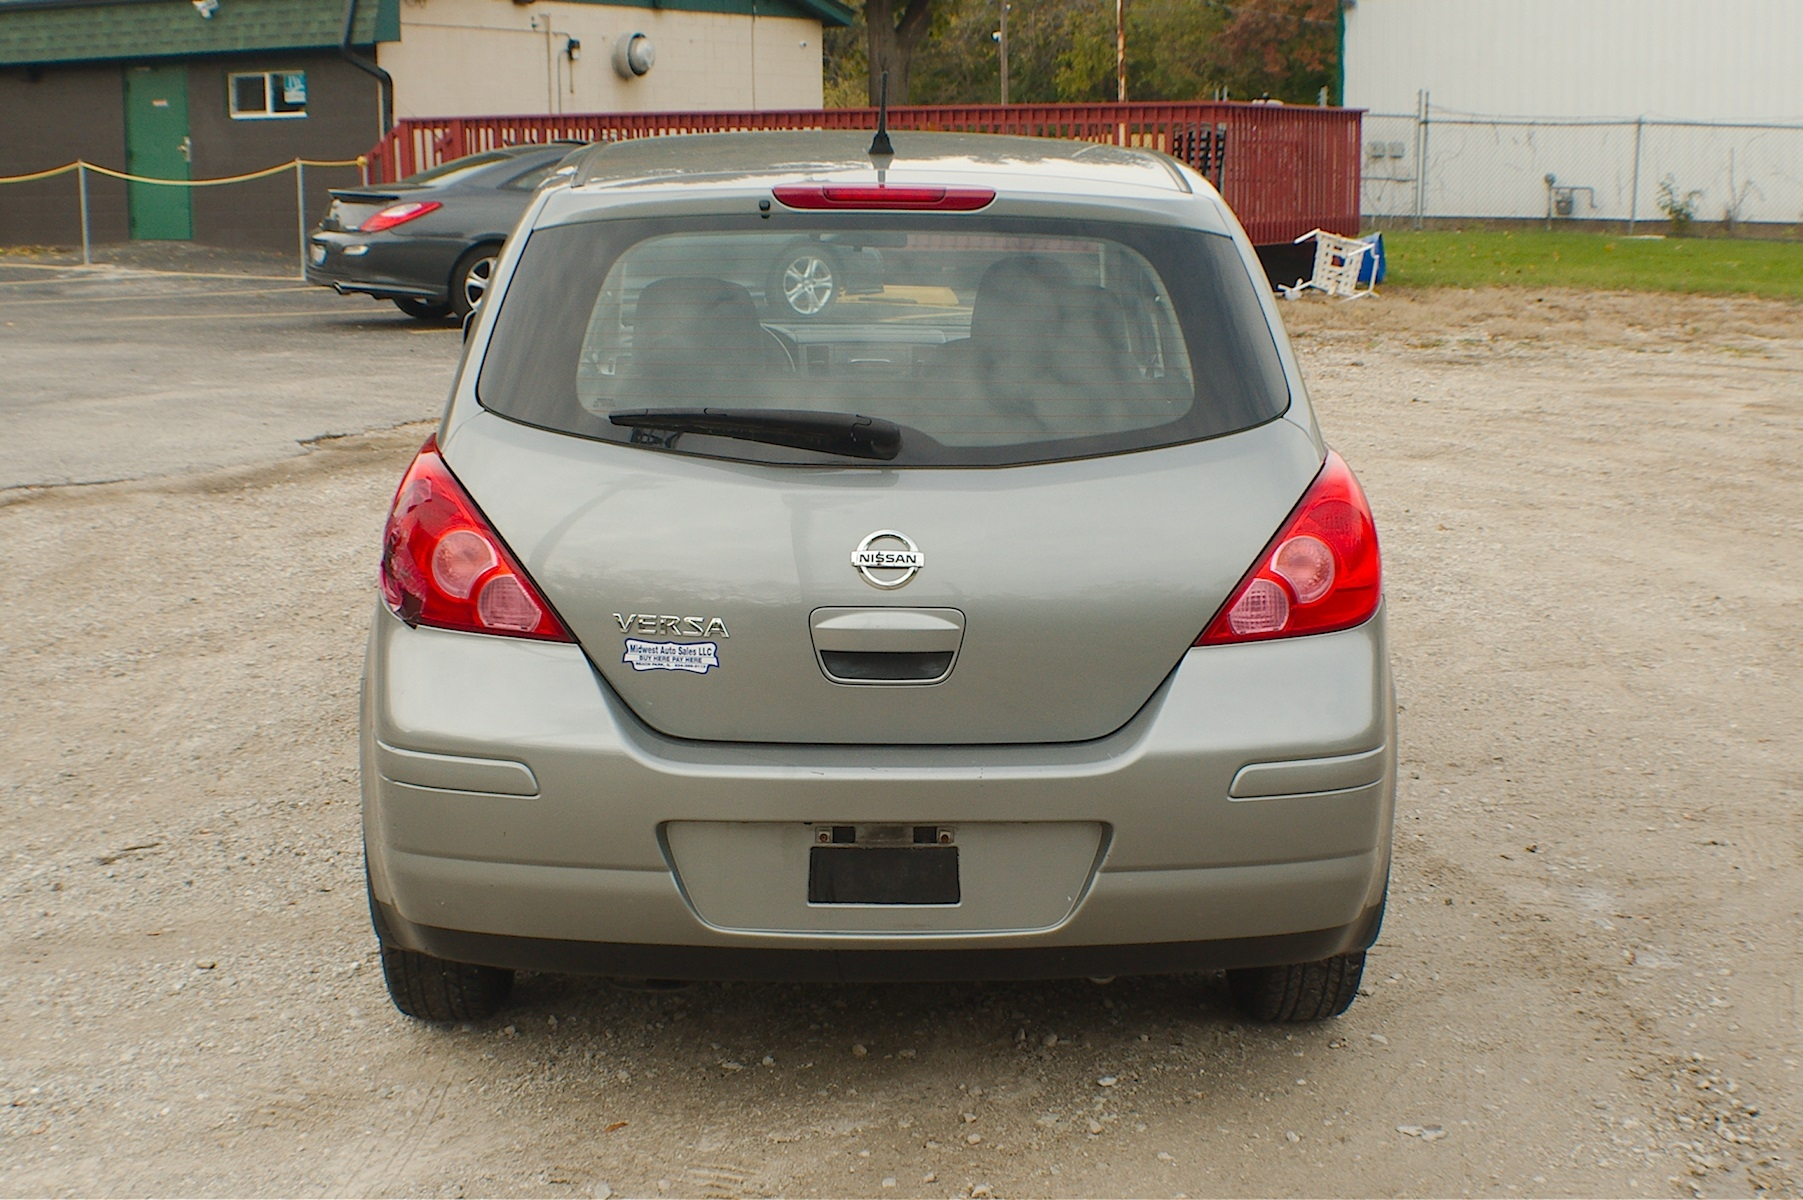 2012 Nissan Versa Gray Sedan Used Car Sale